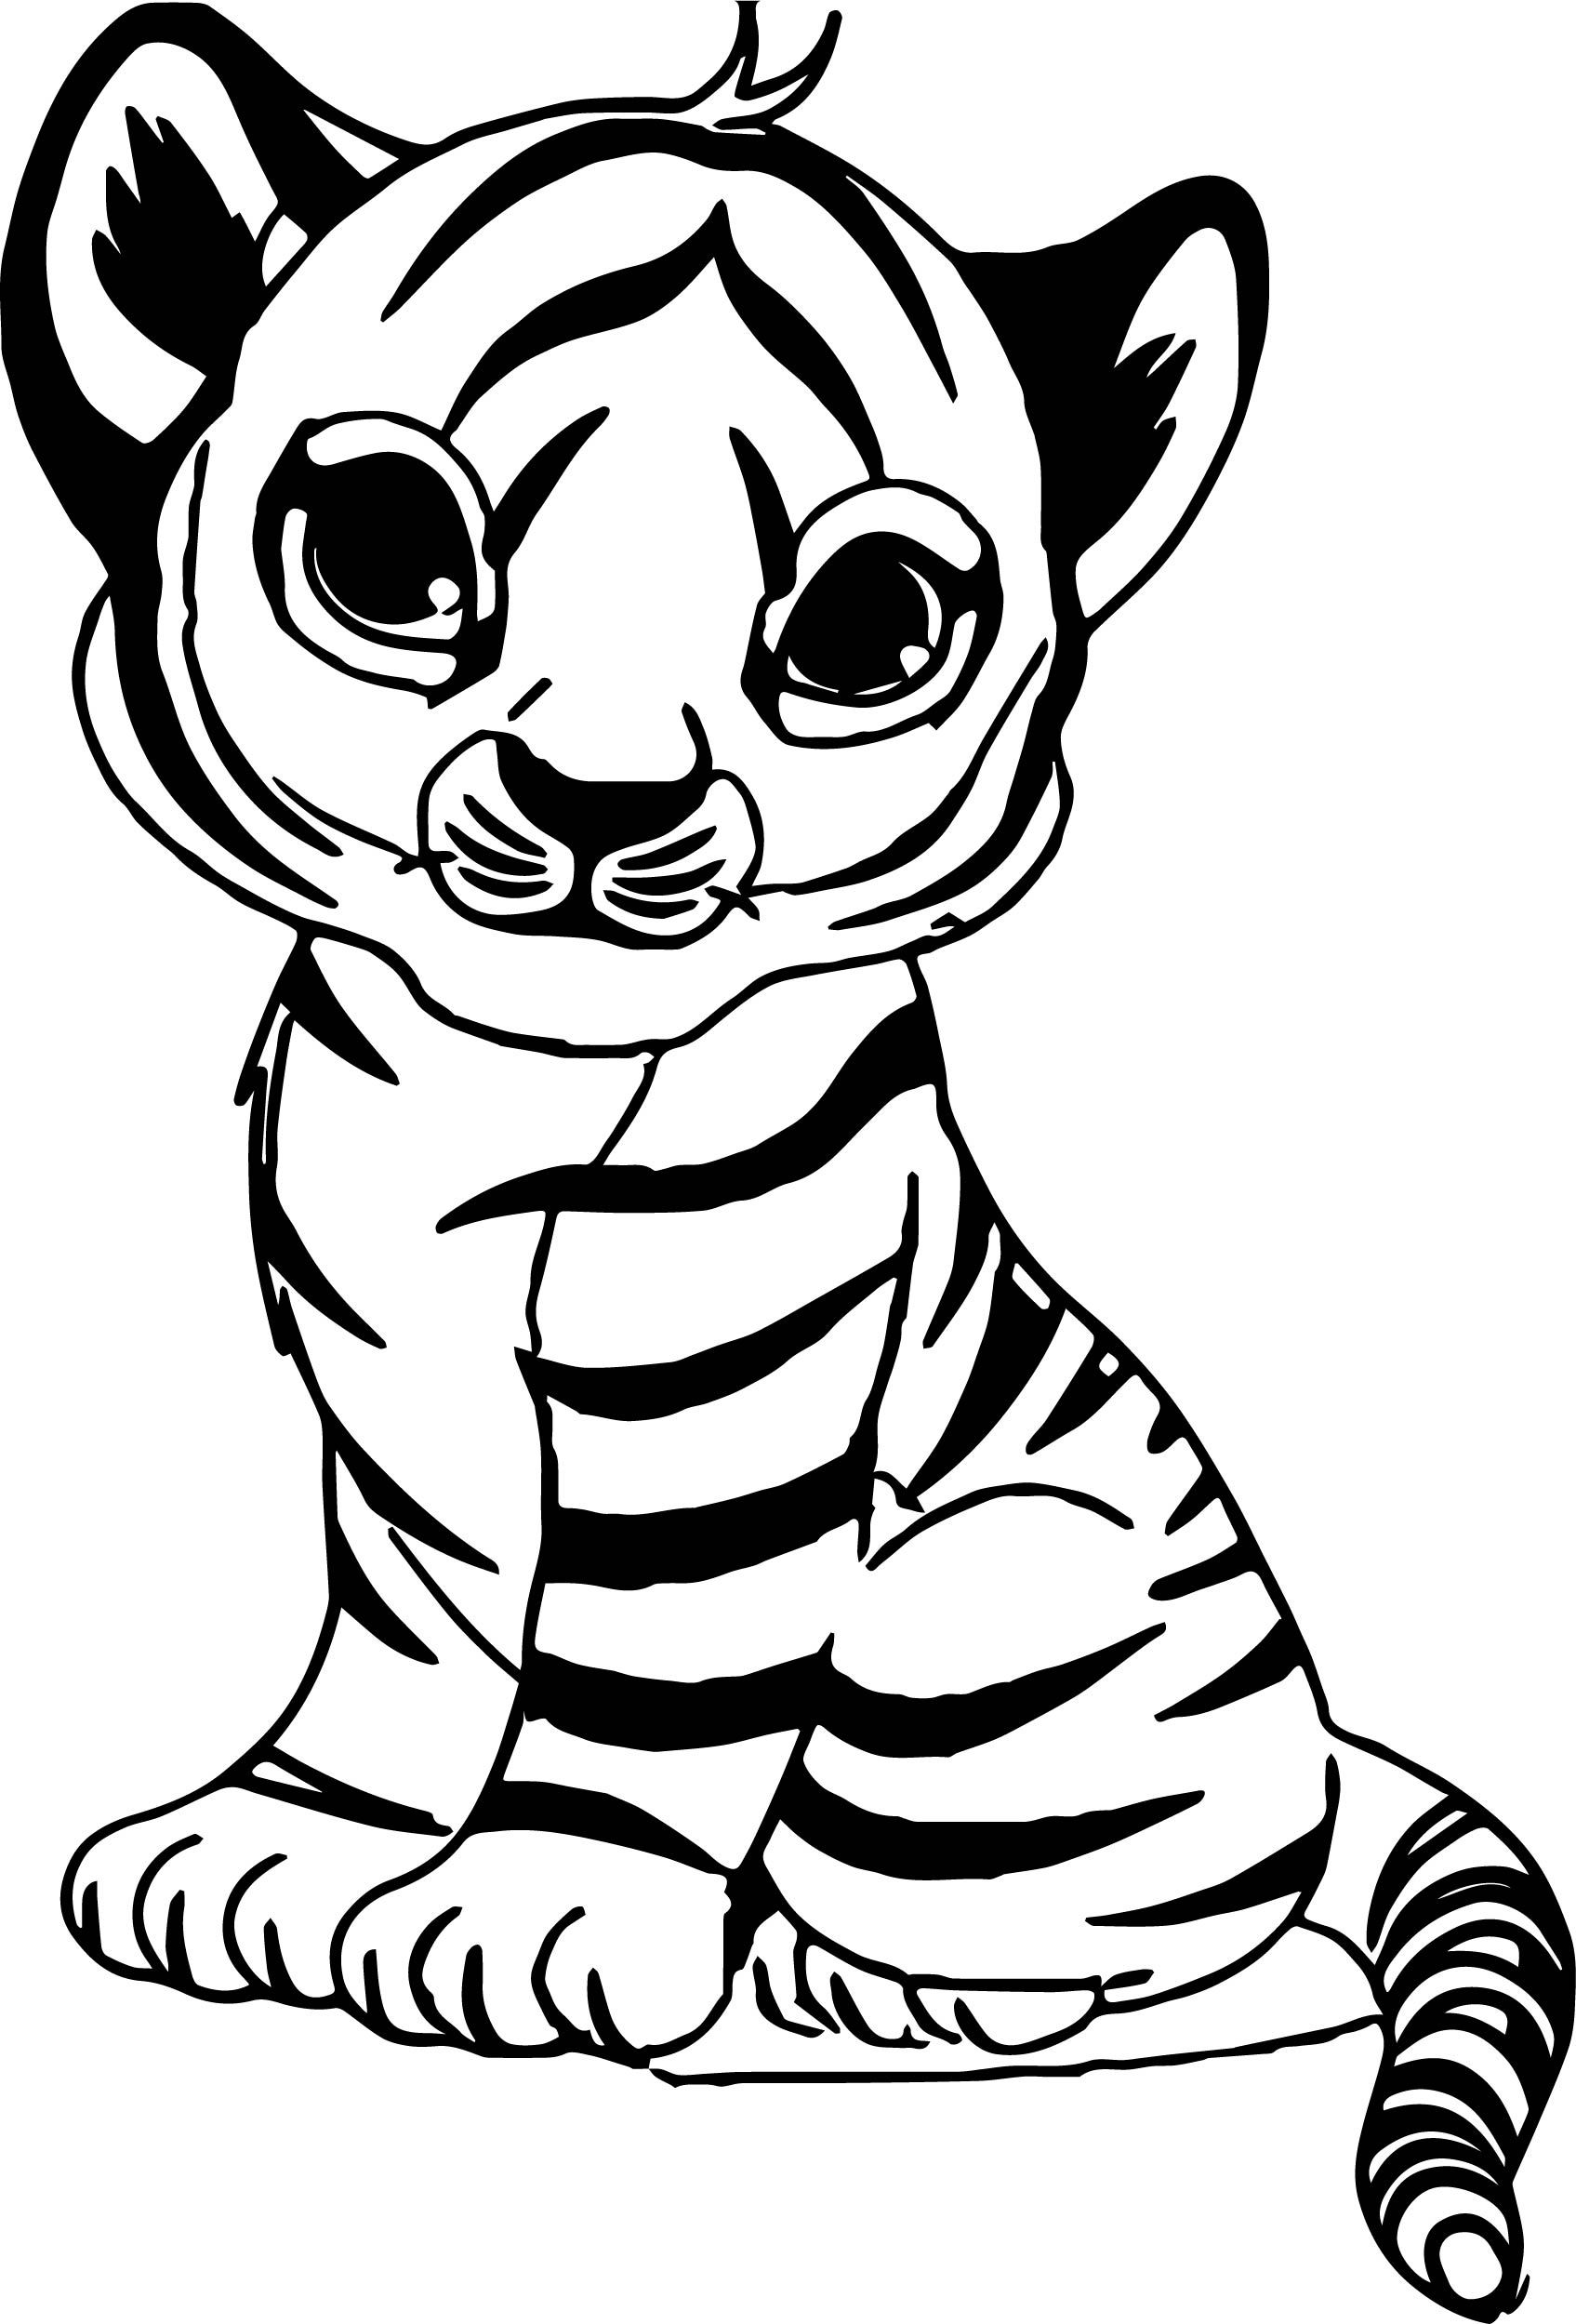 tiger coloring pages free printable animal tiger coloring pages coloring pages tiger